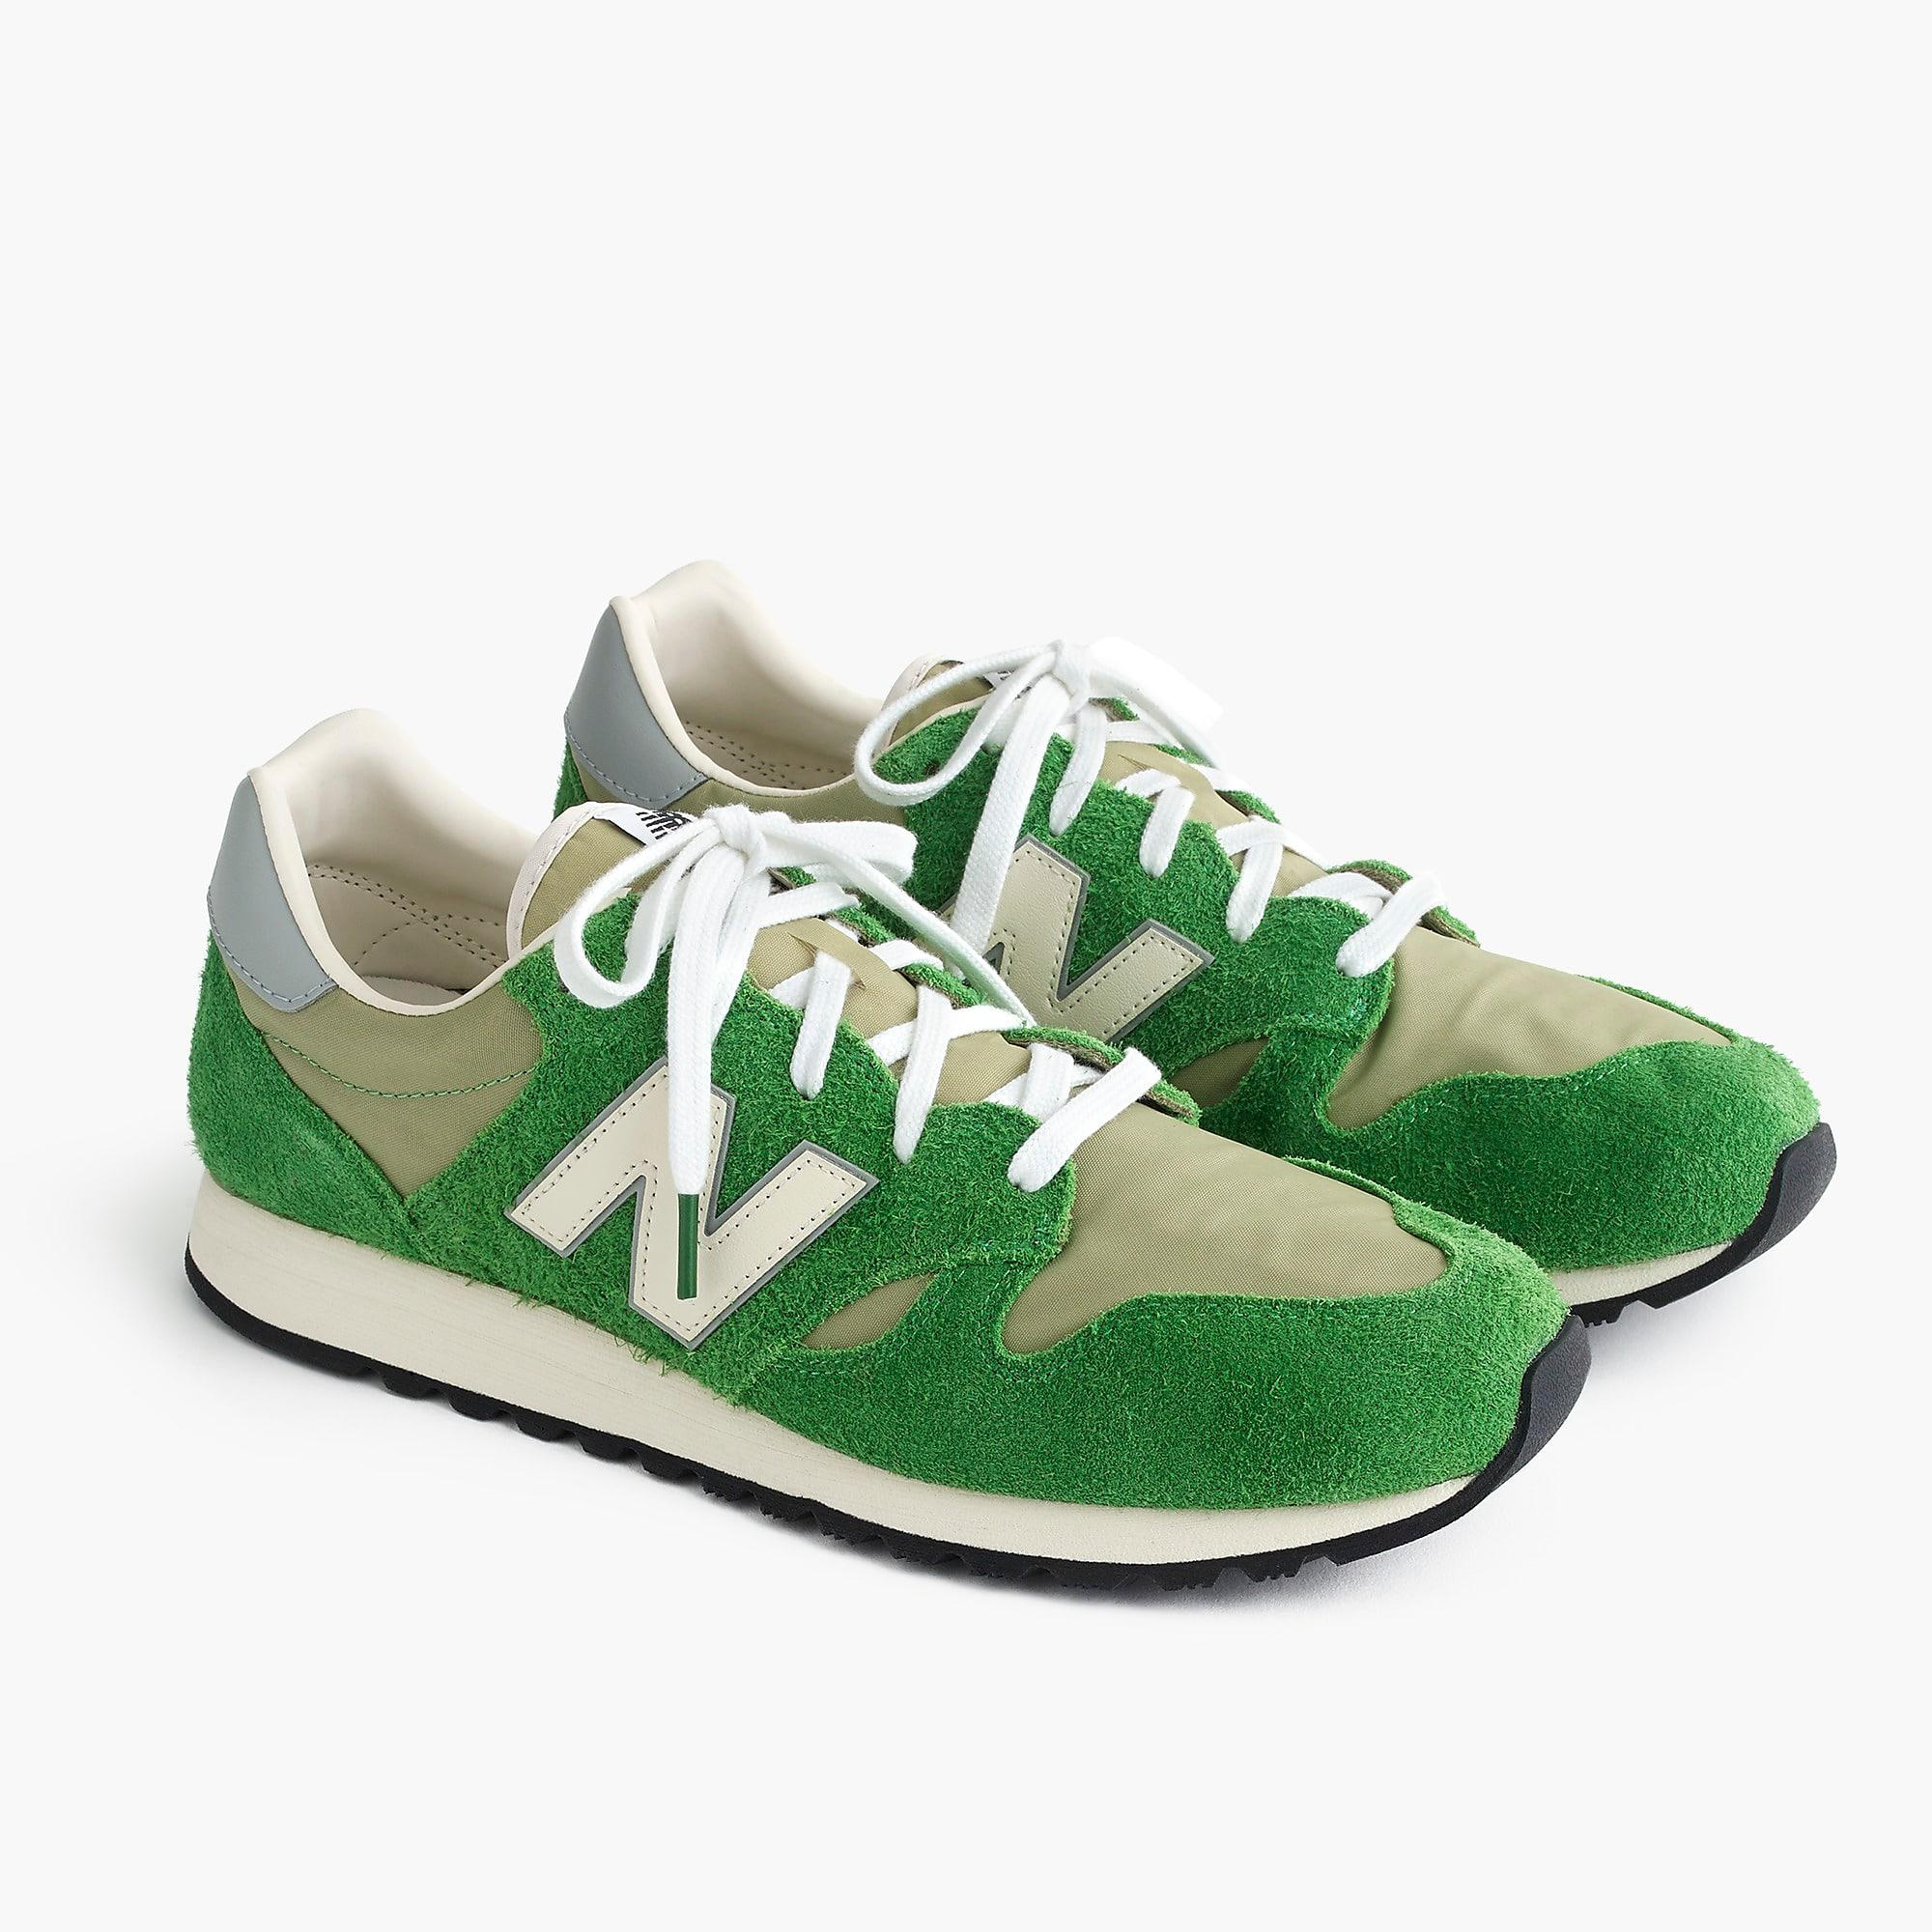 the best attitude 3218c 96c81 New Balance. Mens Green 520 Trainers In Hairy Suede